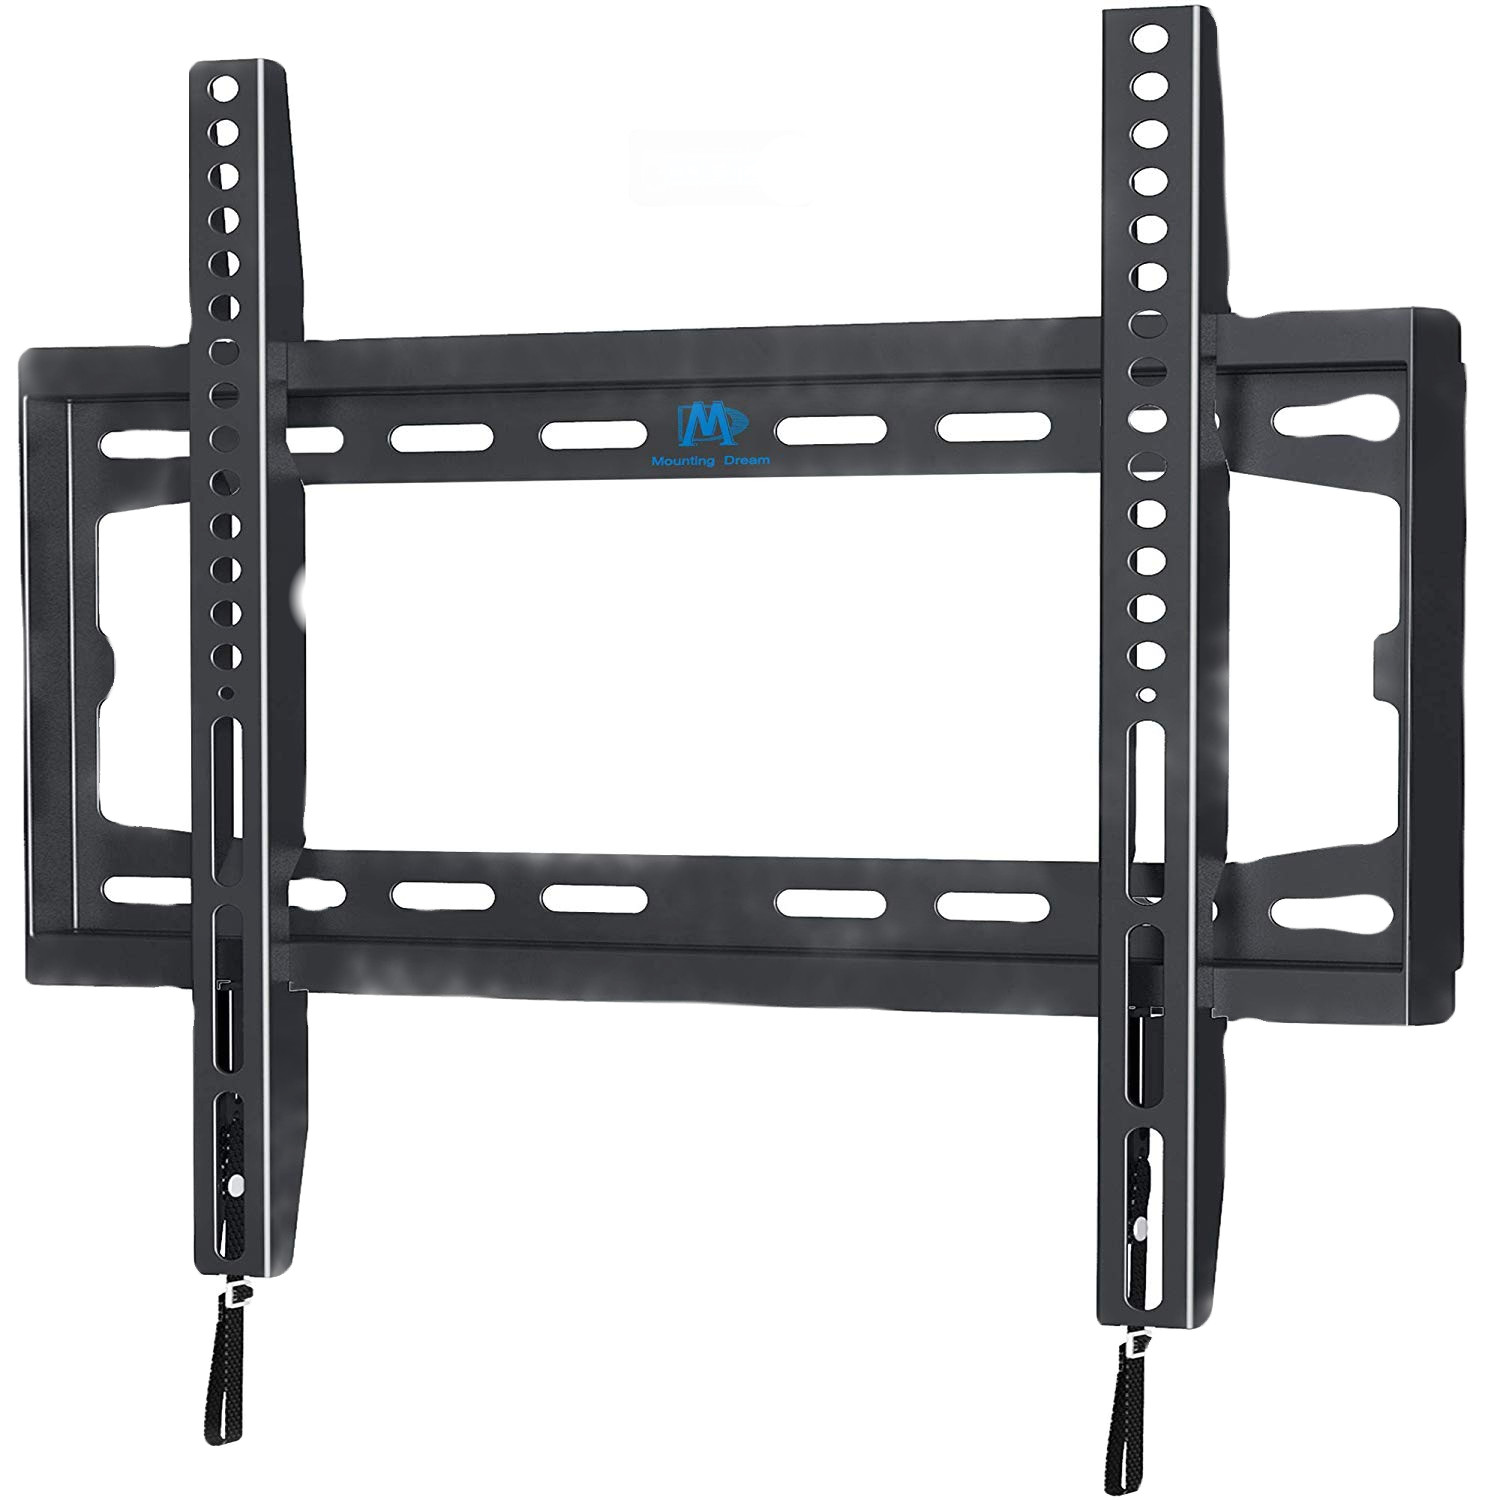 Basic Fixed Flat Wall Mount Package